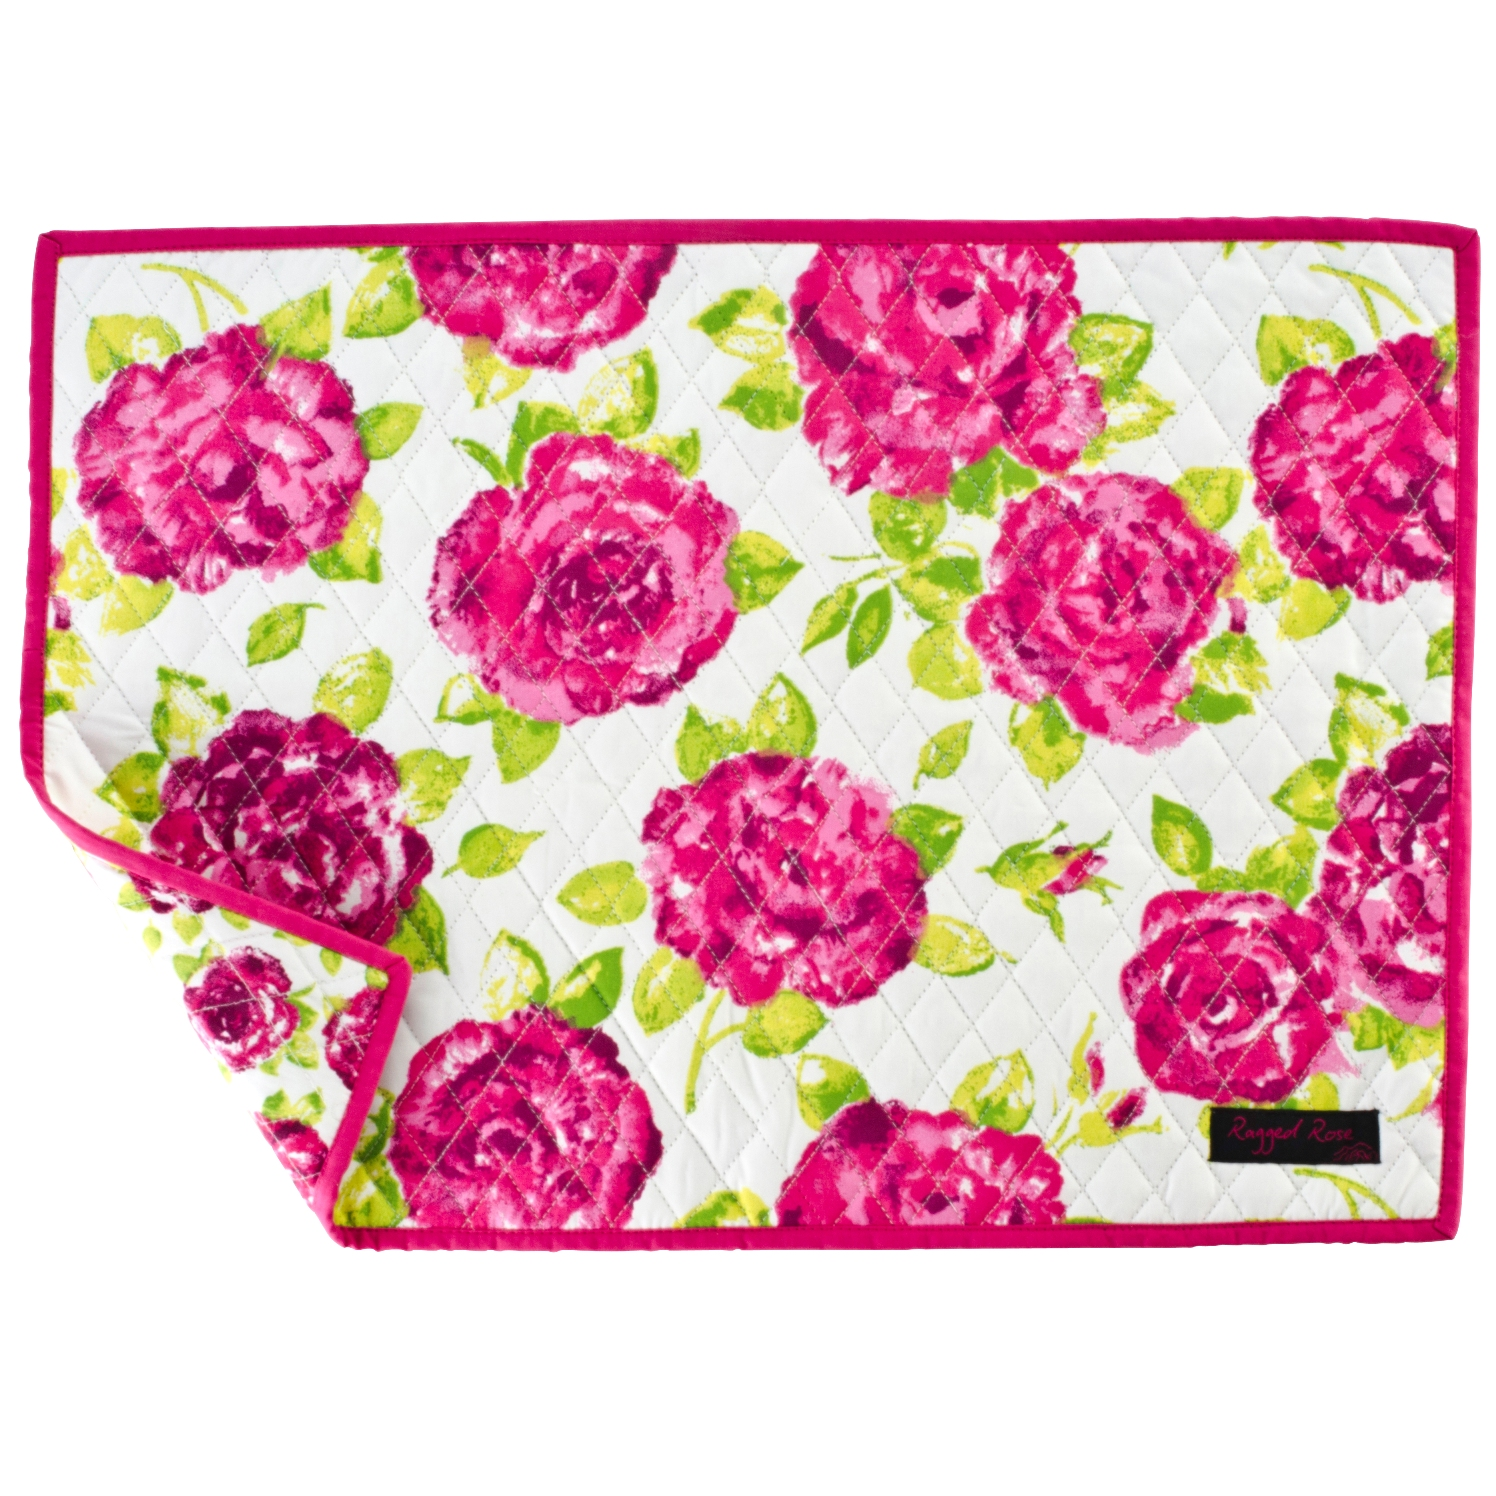 Rose & White Placemat      €7.00